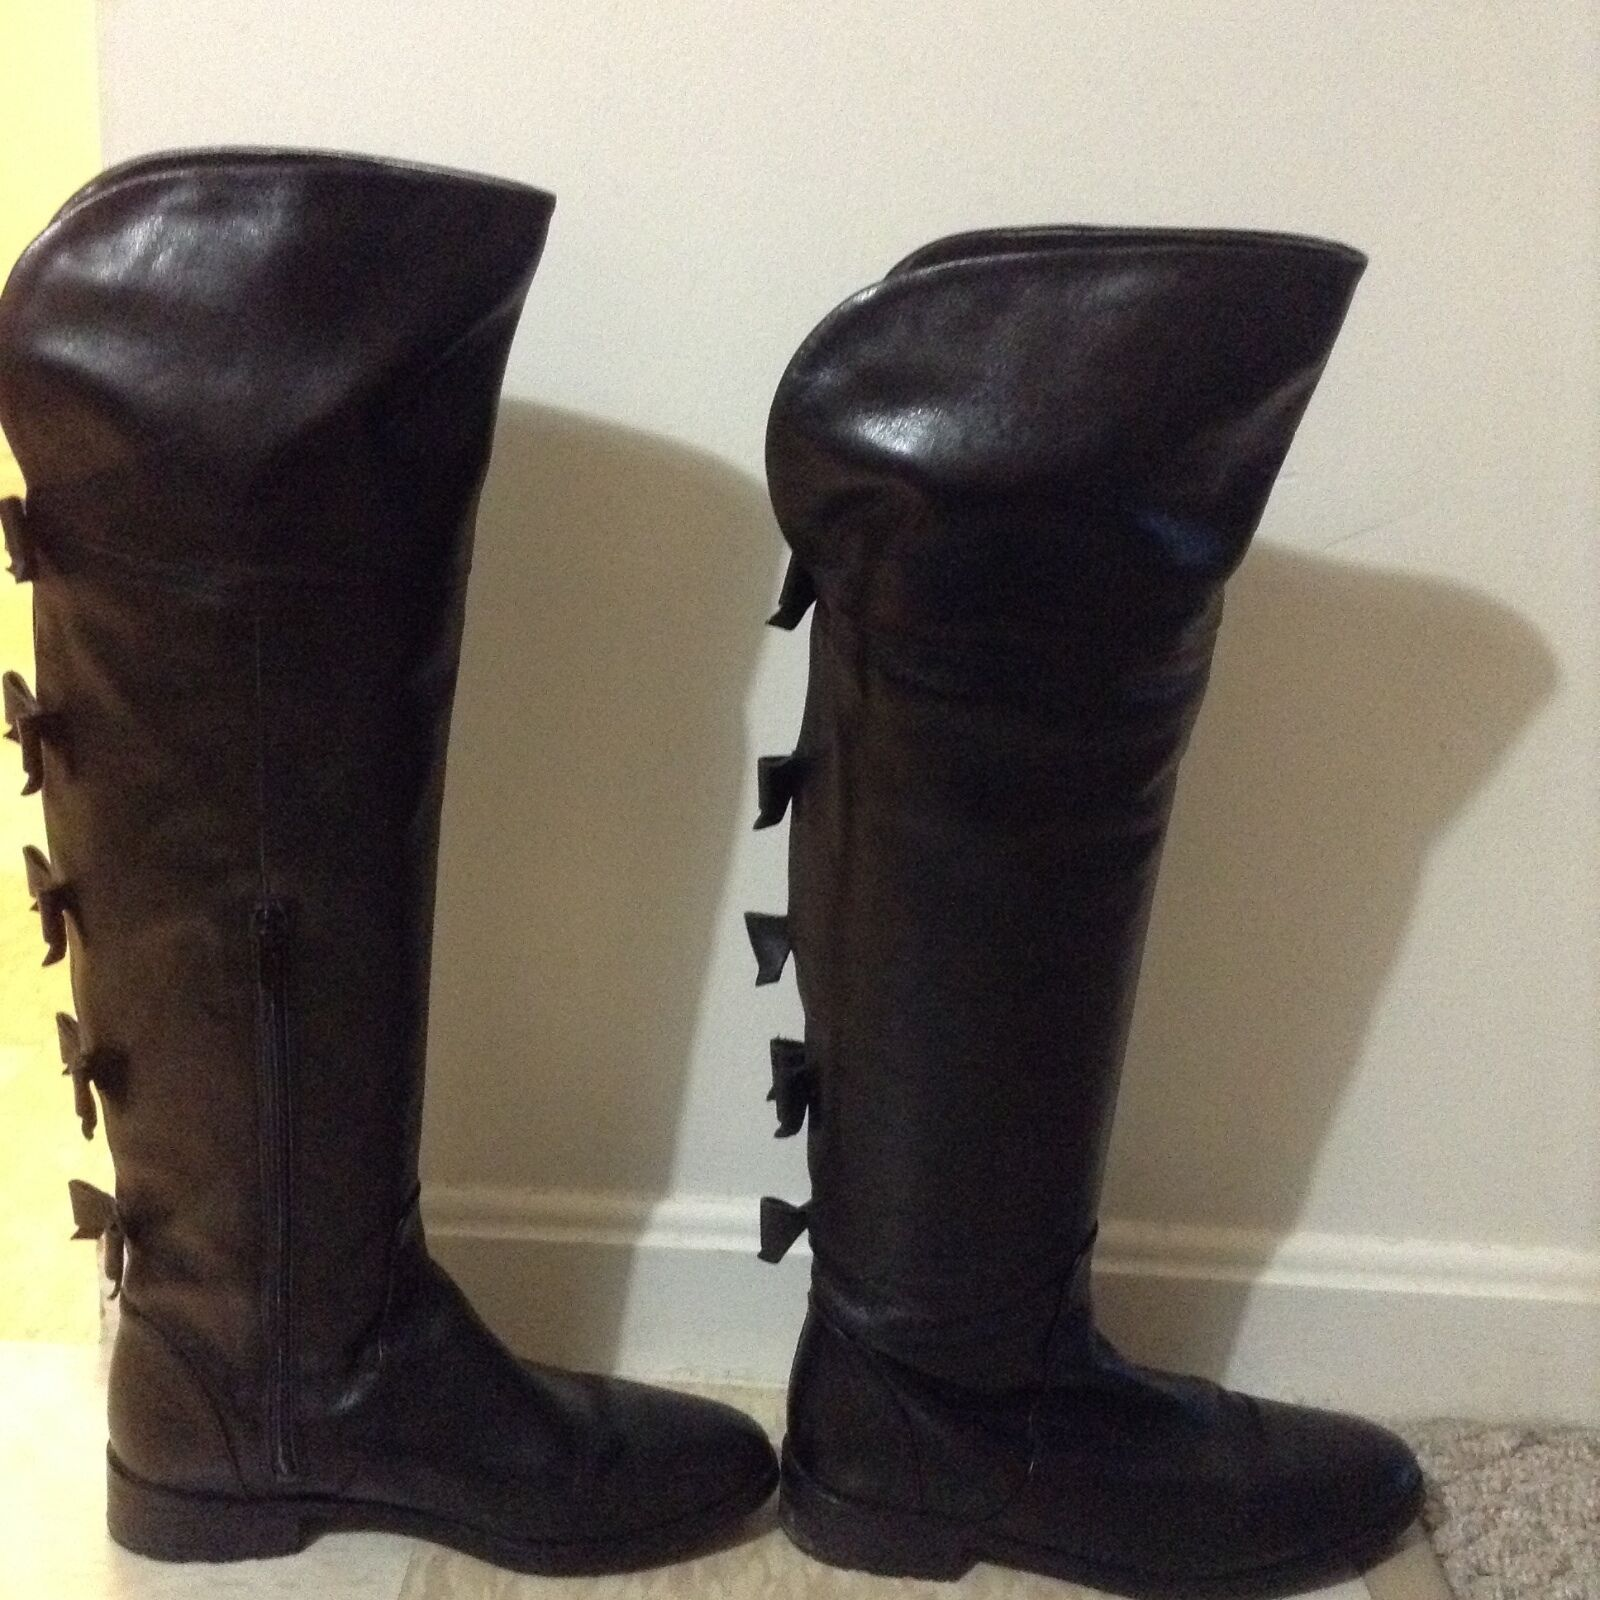 AUTHENTIC Sartore Black Leather Boots with Box 1170